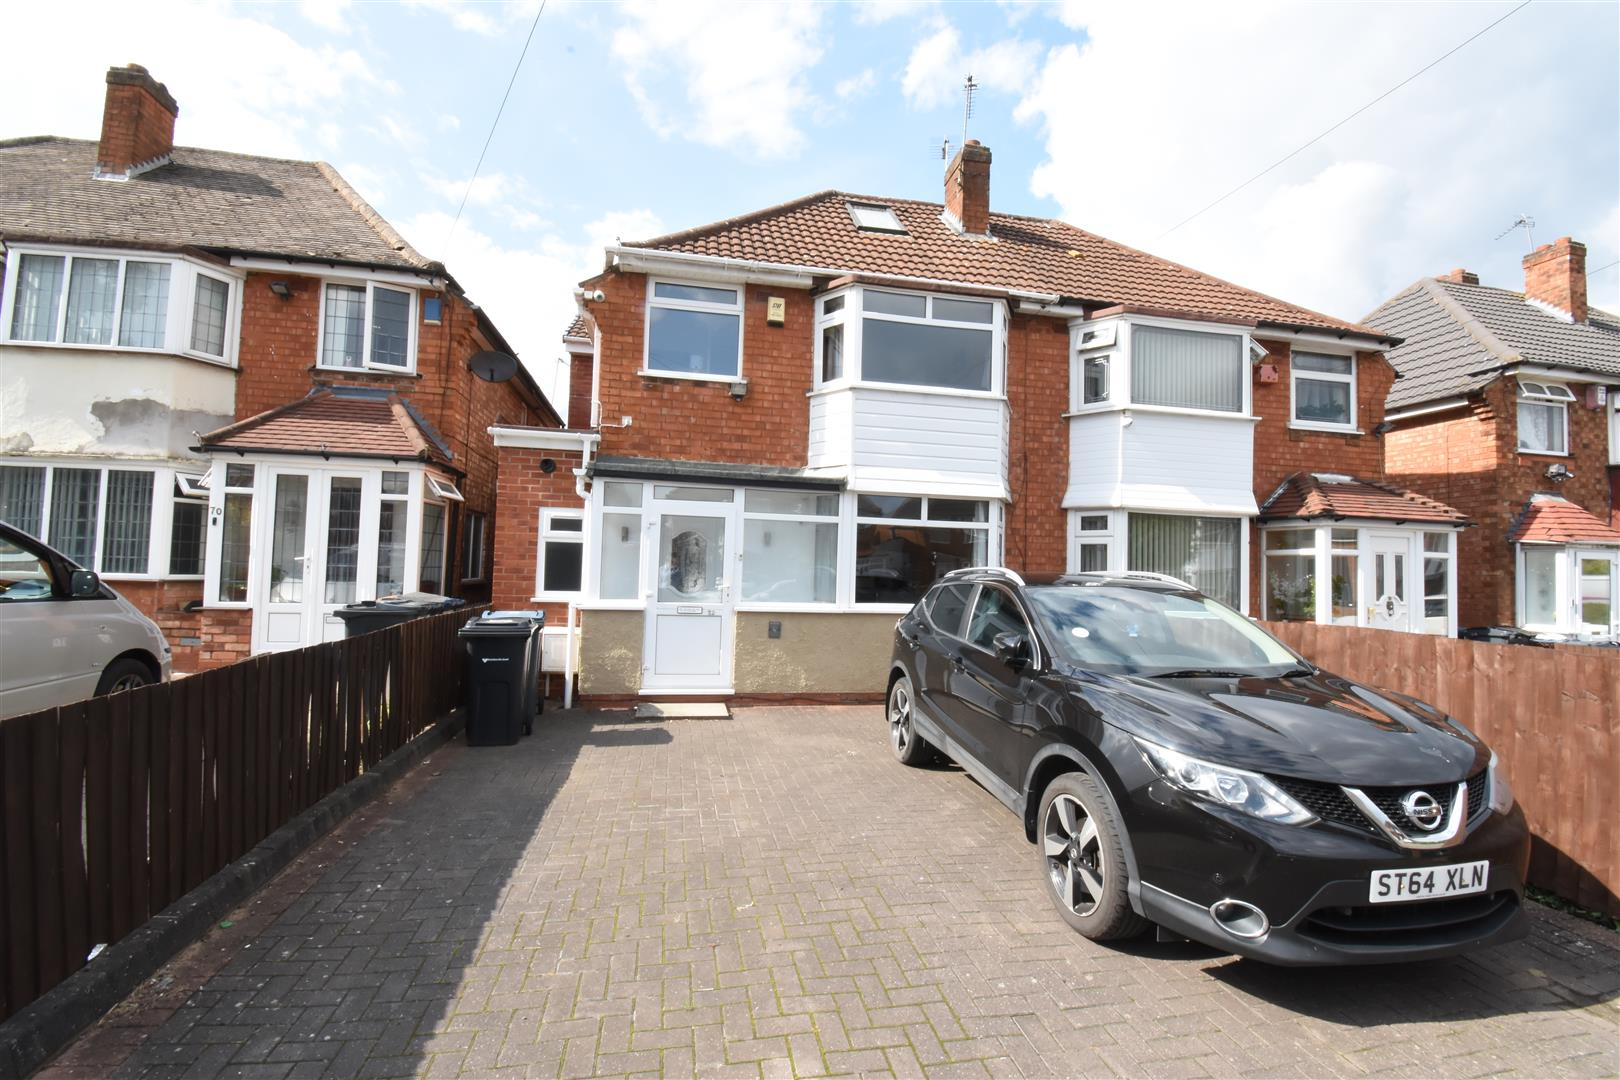 3 bed house for sale in Falmouth Road, Hodge Hill, Birmingham, B34